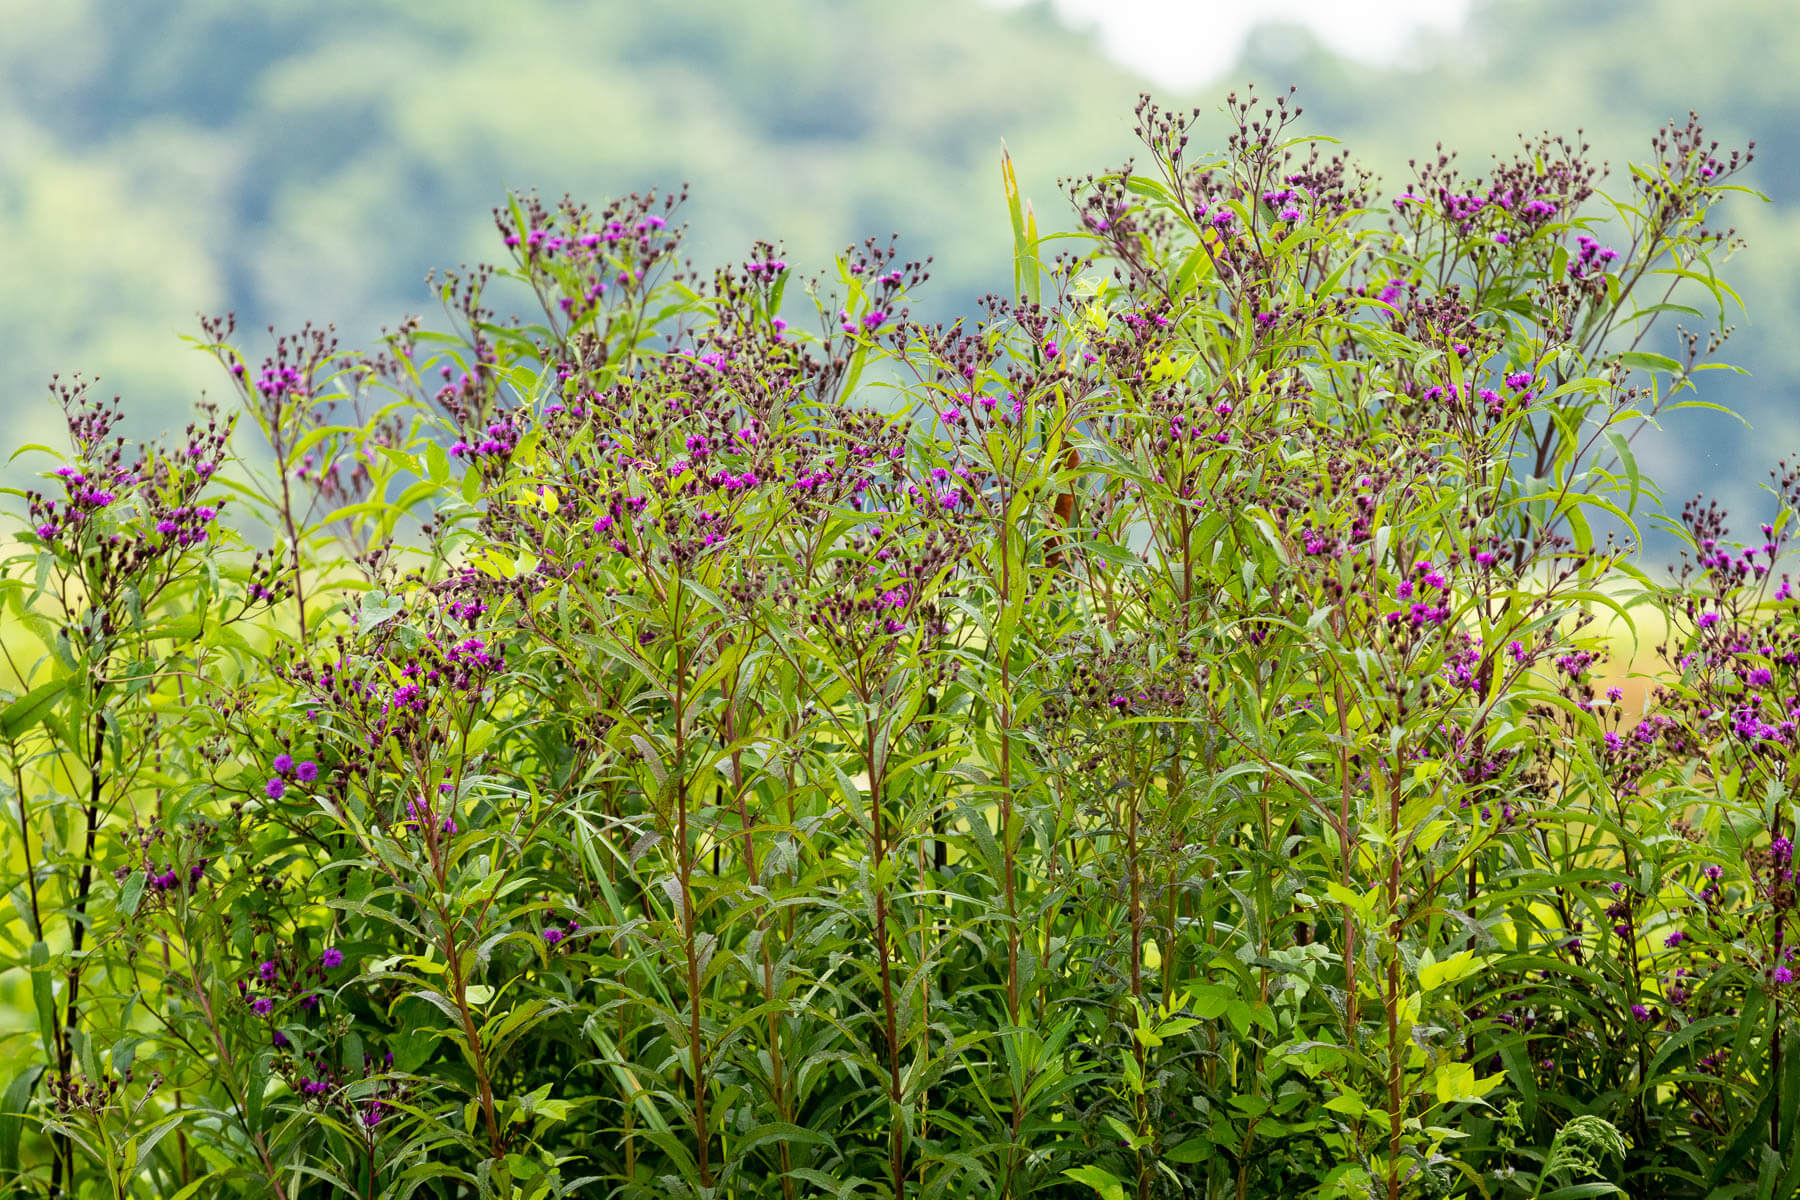 Purple flowers on tall stalks stand in the sun